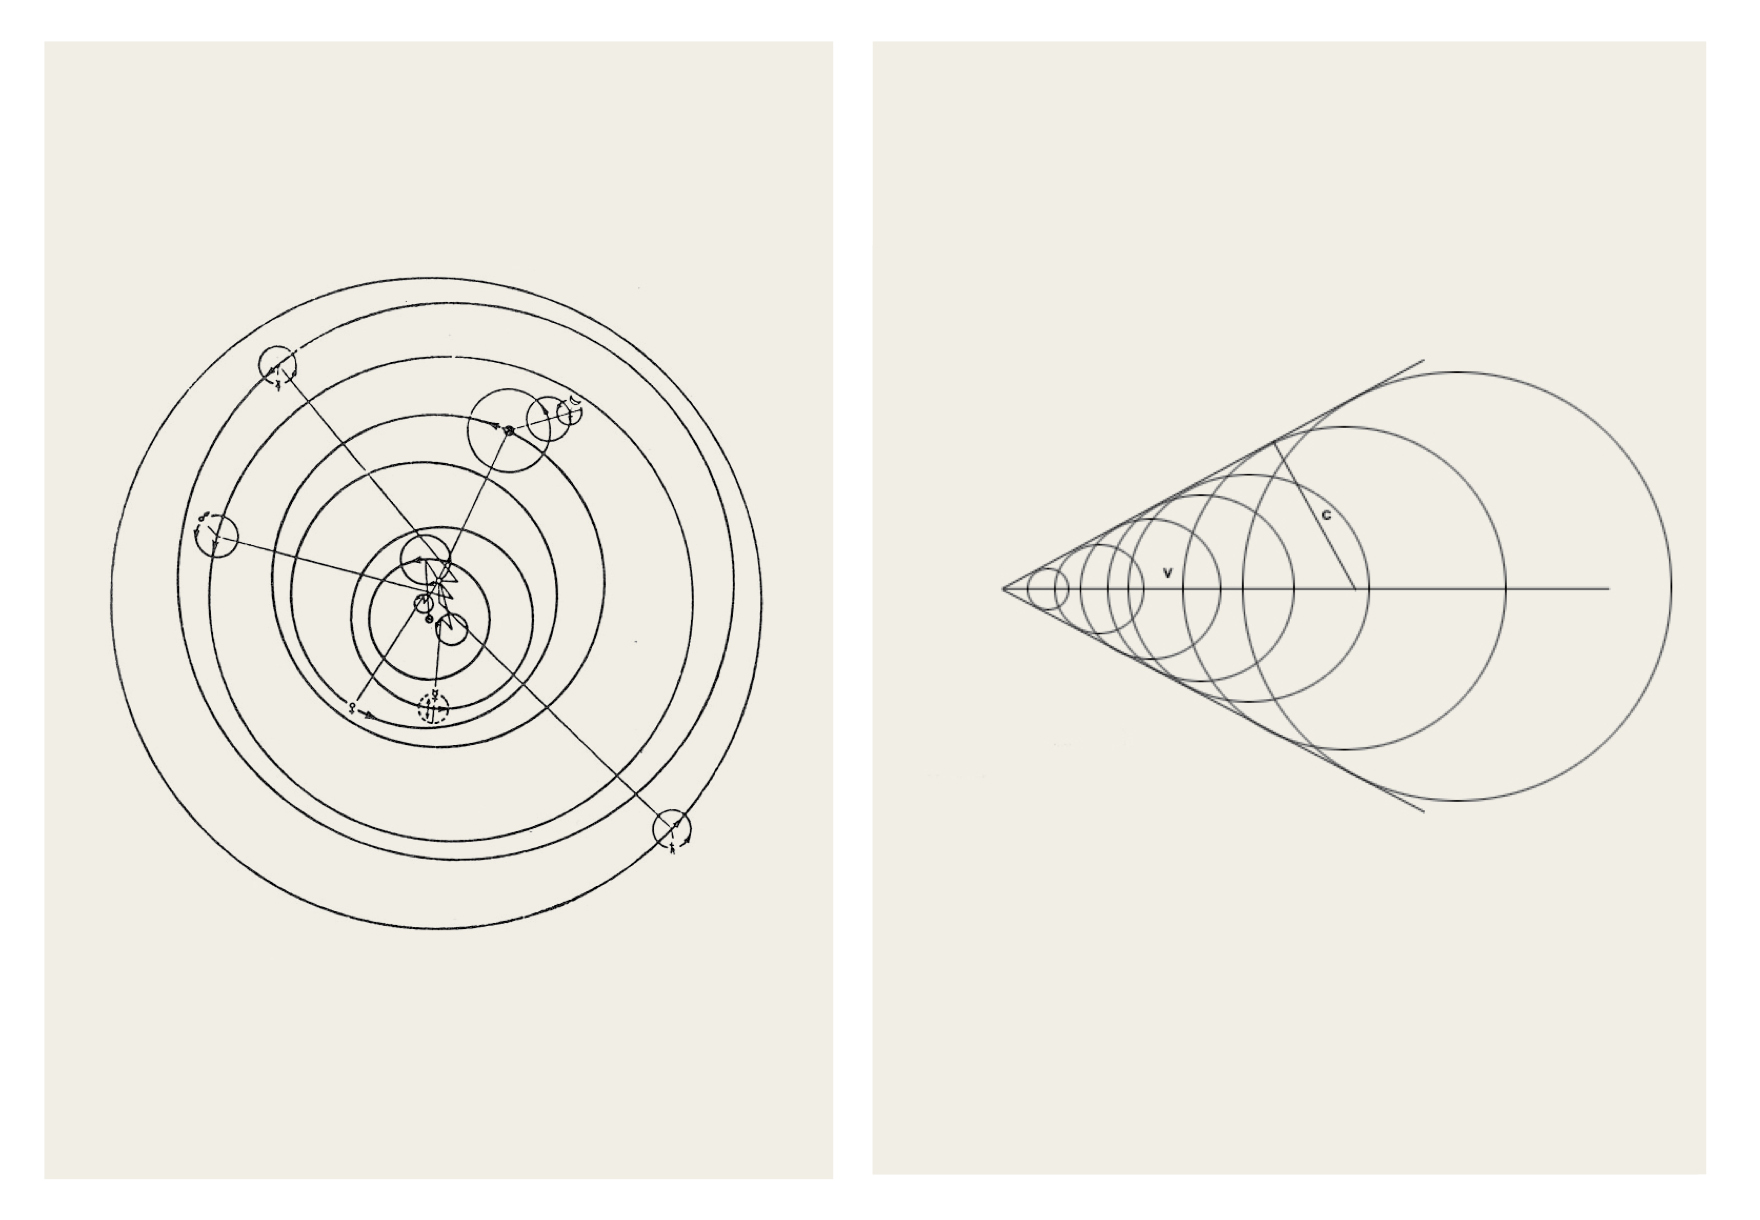 Andrea Galvani  © 2015 (Left)  The End  #10 (  Study on Galileo Galilei Diagram  ), (Right)  The End  #11 (  Study on Mach Wave Diagram  ),   Both Black Ink on Archival paper, white wood frame with museum glass, 50 x 70 cm each.